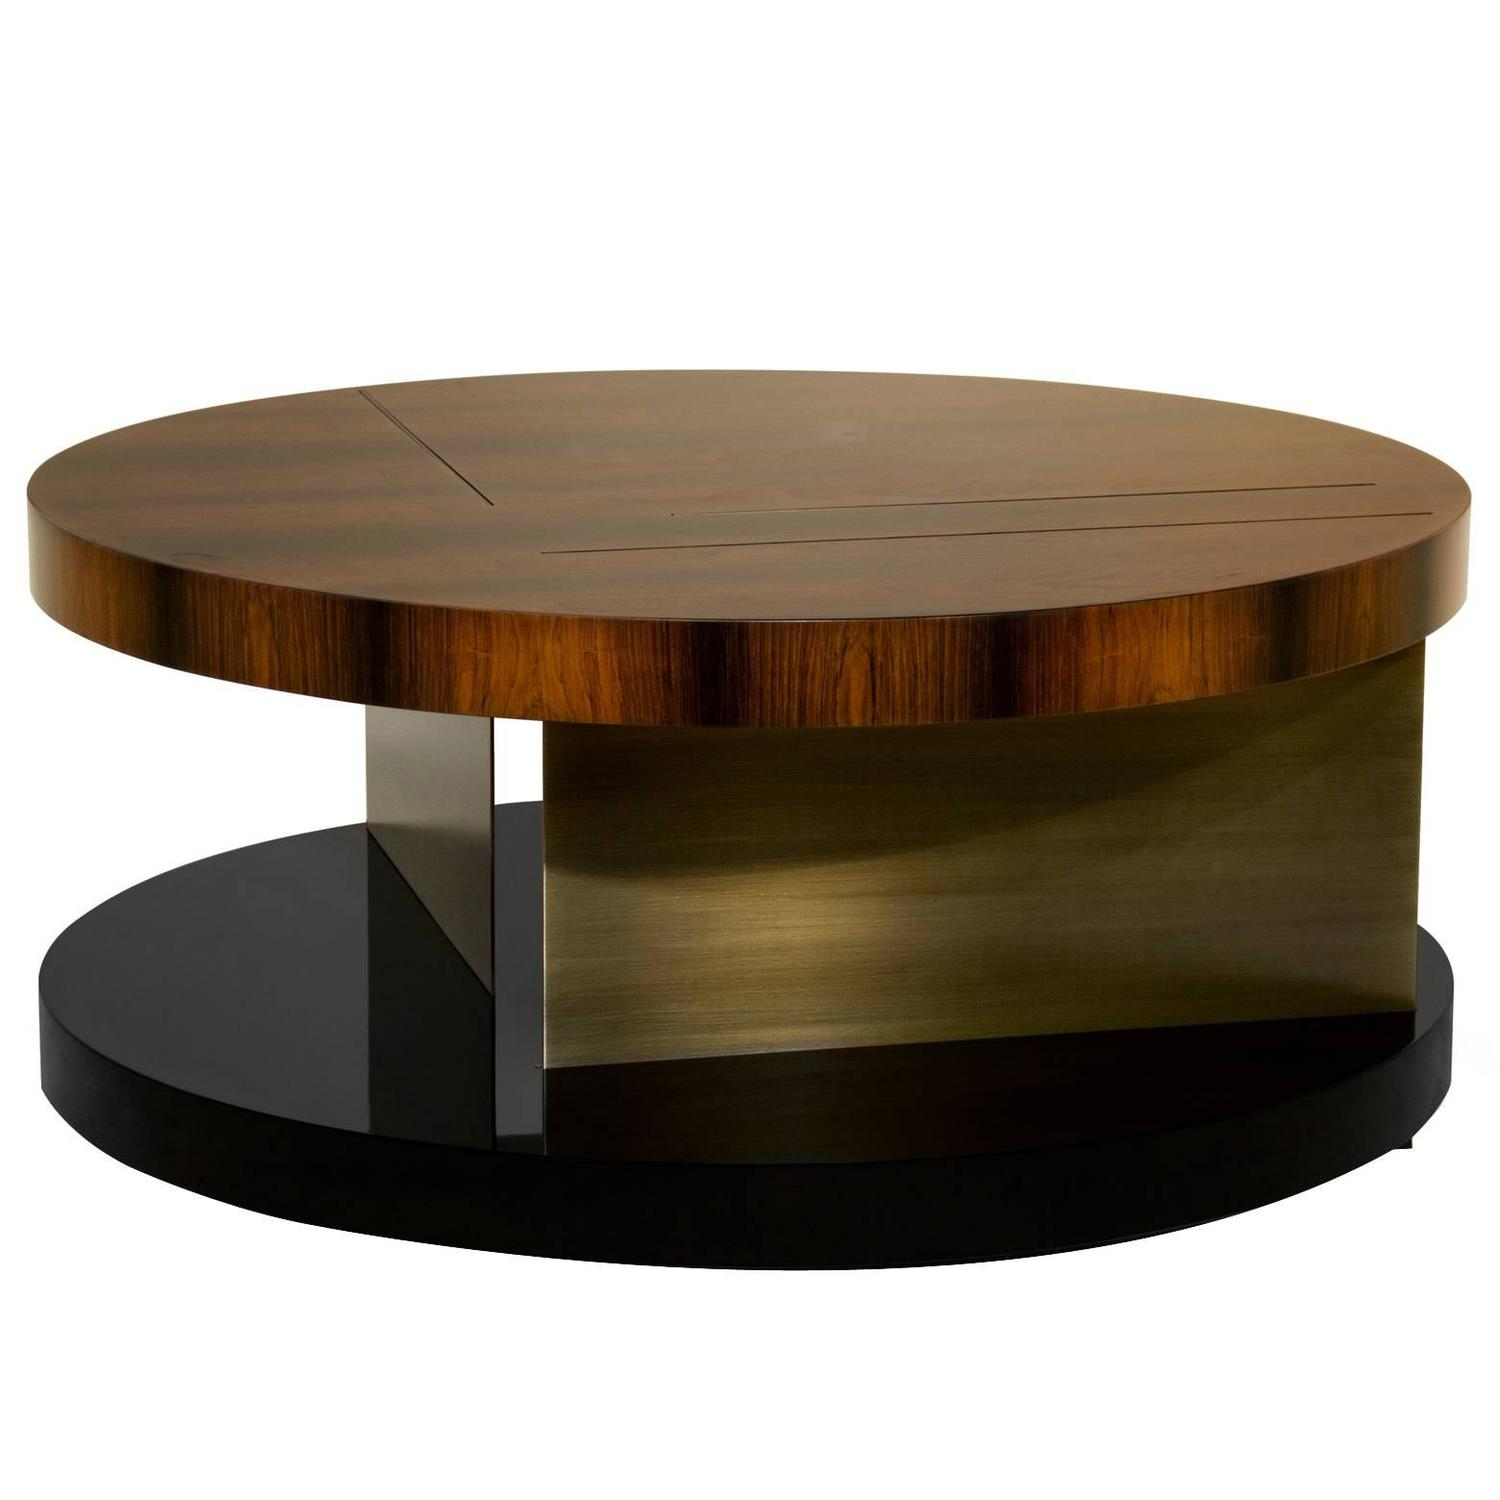 Chloe Round Coffee Table With High Glossy Lacquer Veneer Wood And Brass For Sale At 1stdibs